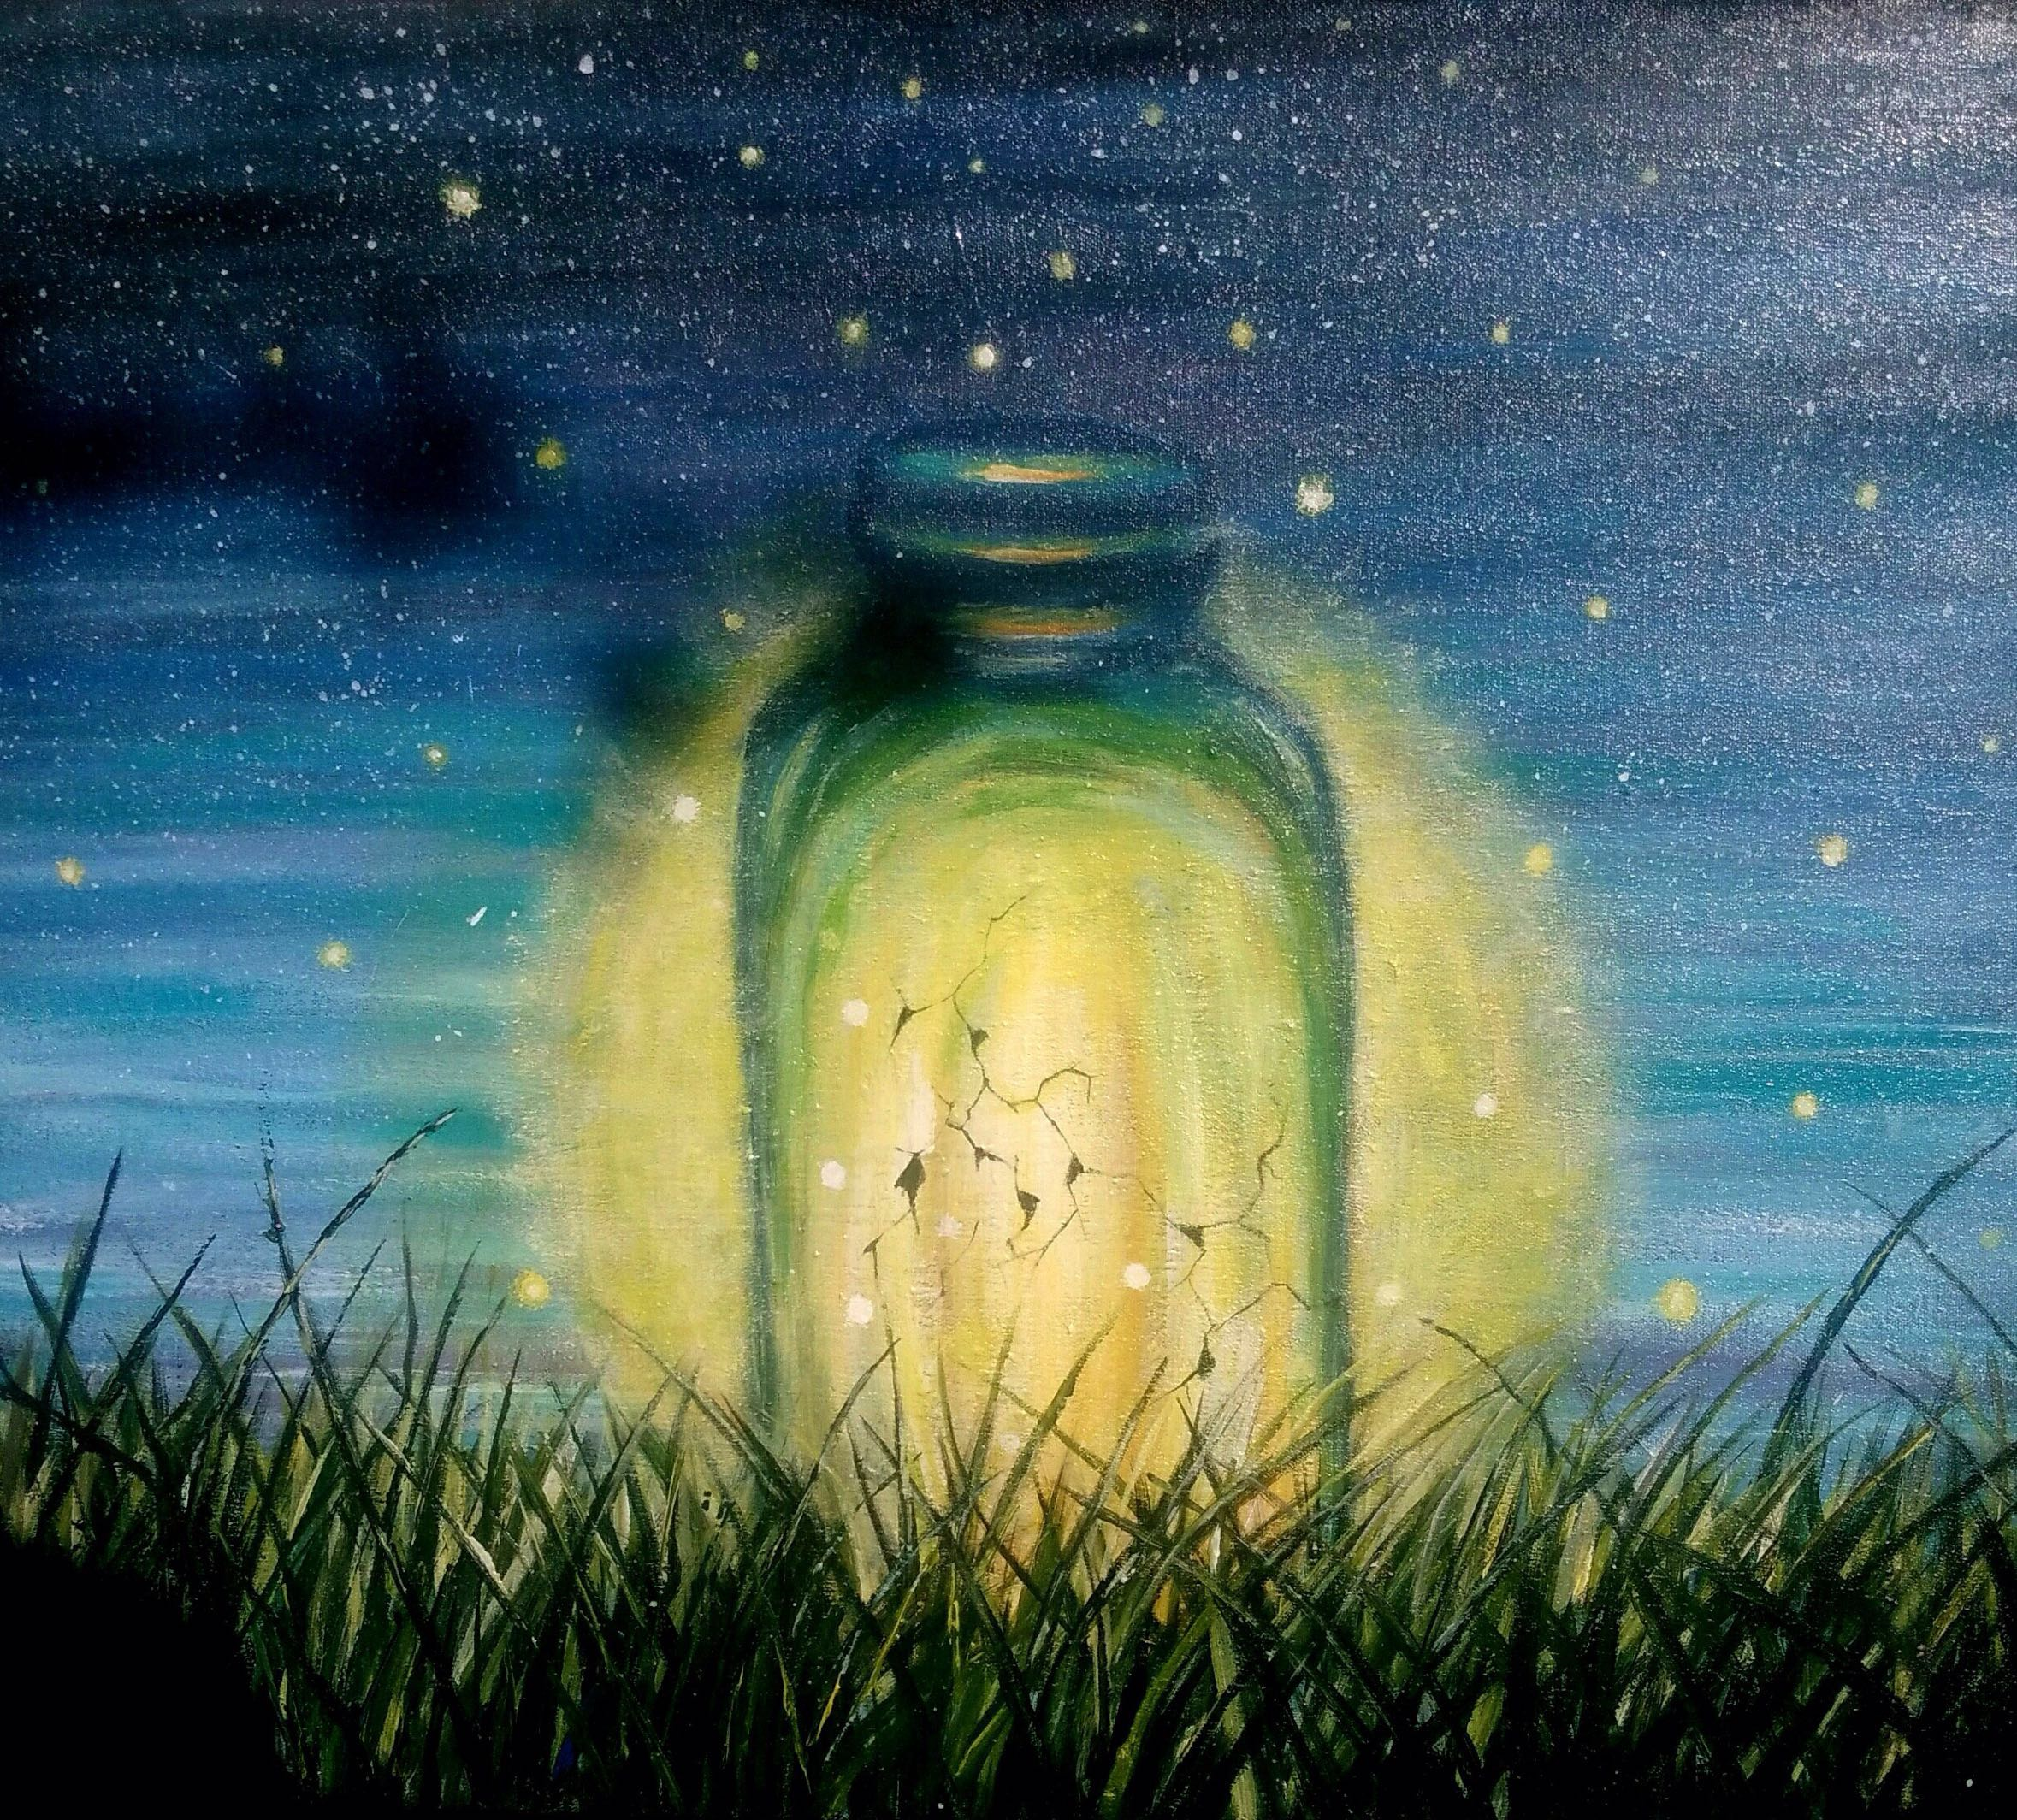 Fireflies In A Jar – Quaestio.org for Fireflies In A Jar Cover Photo  55dqh